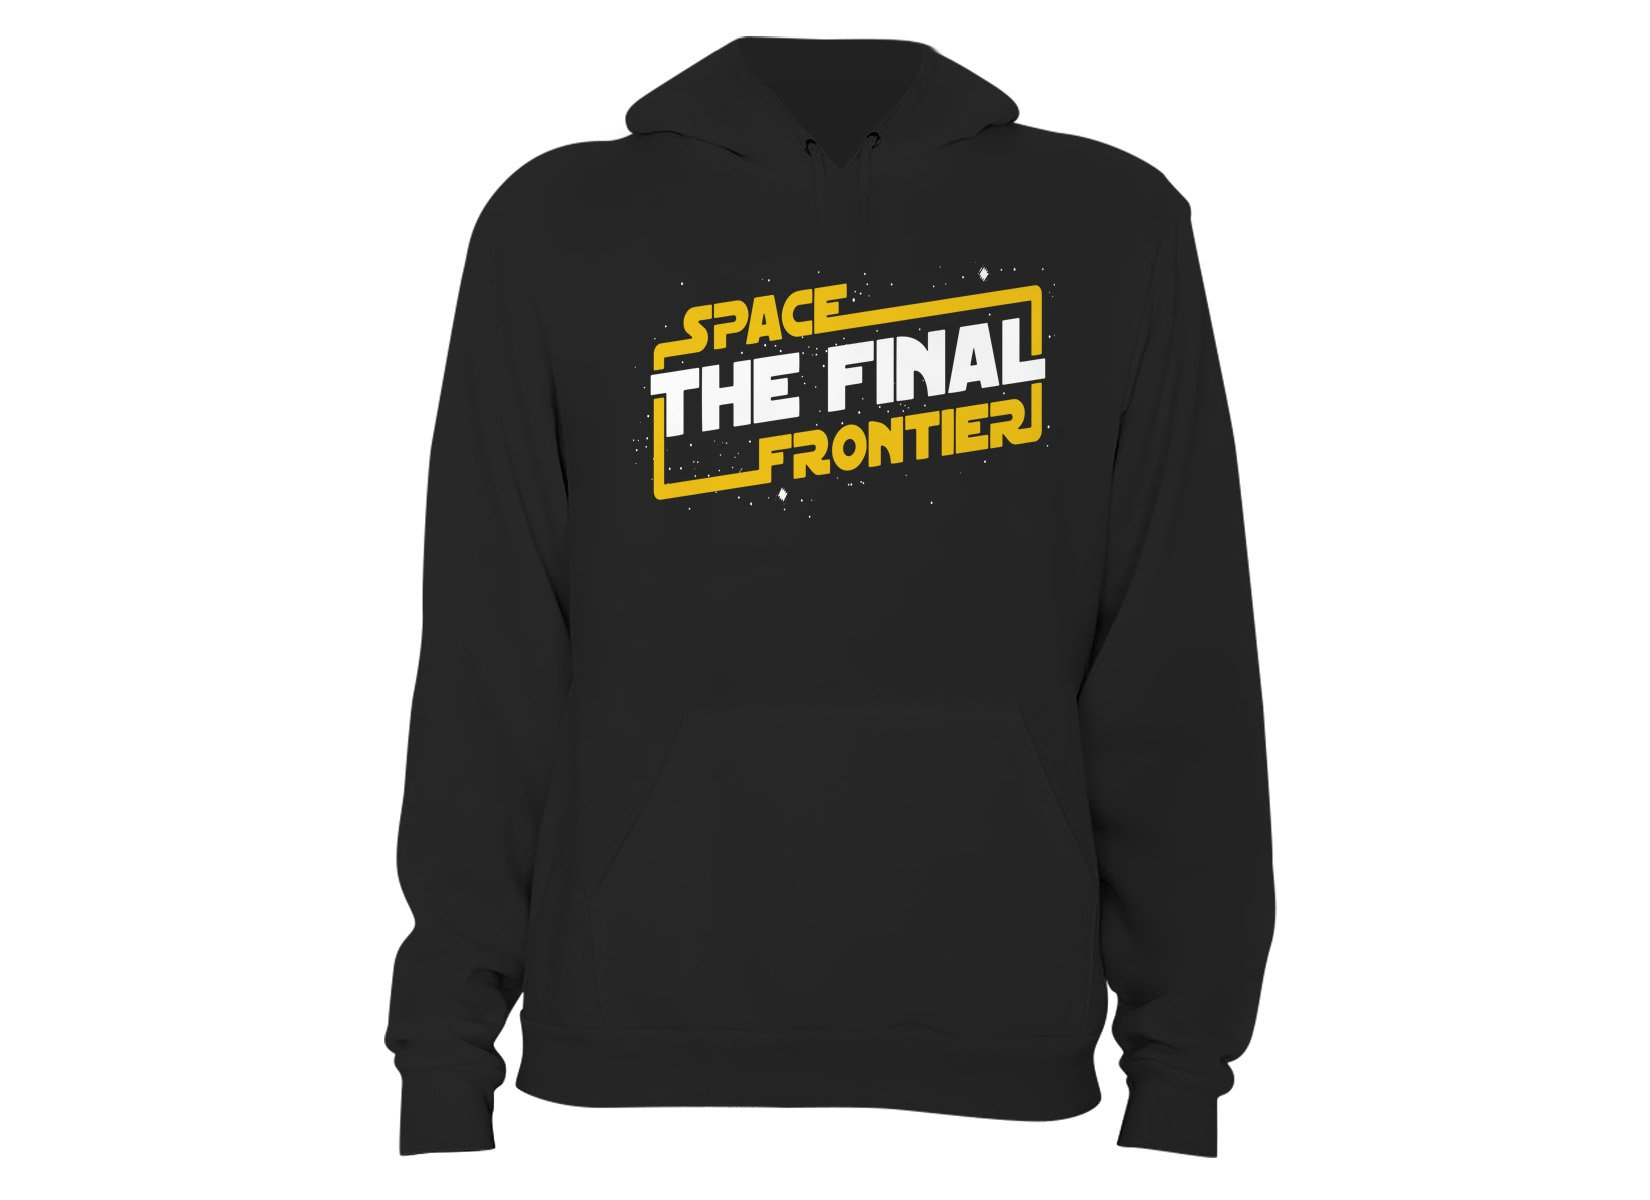 Space The Final Frontier on Hoodie